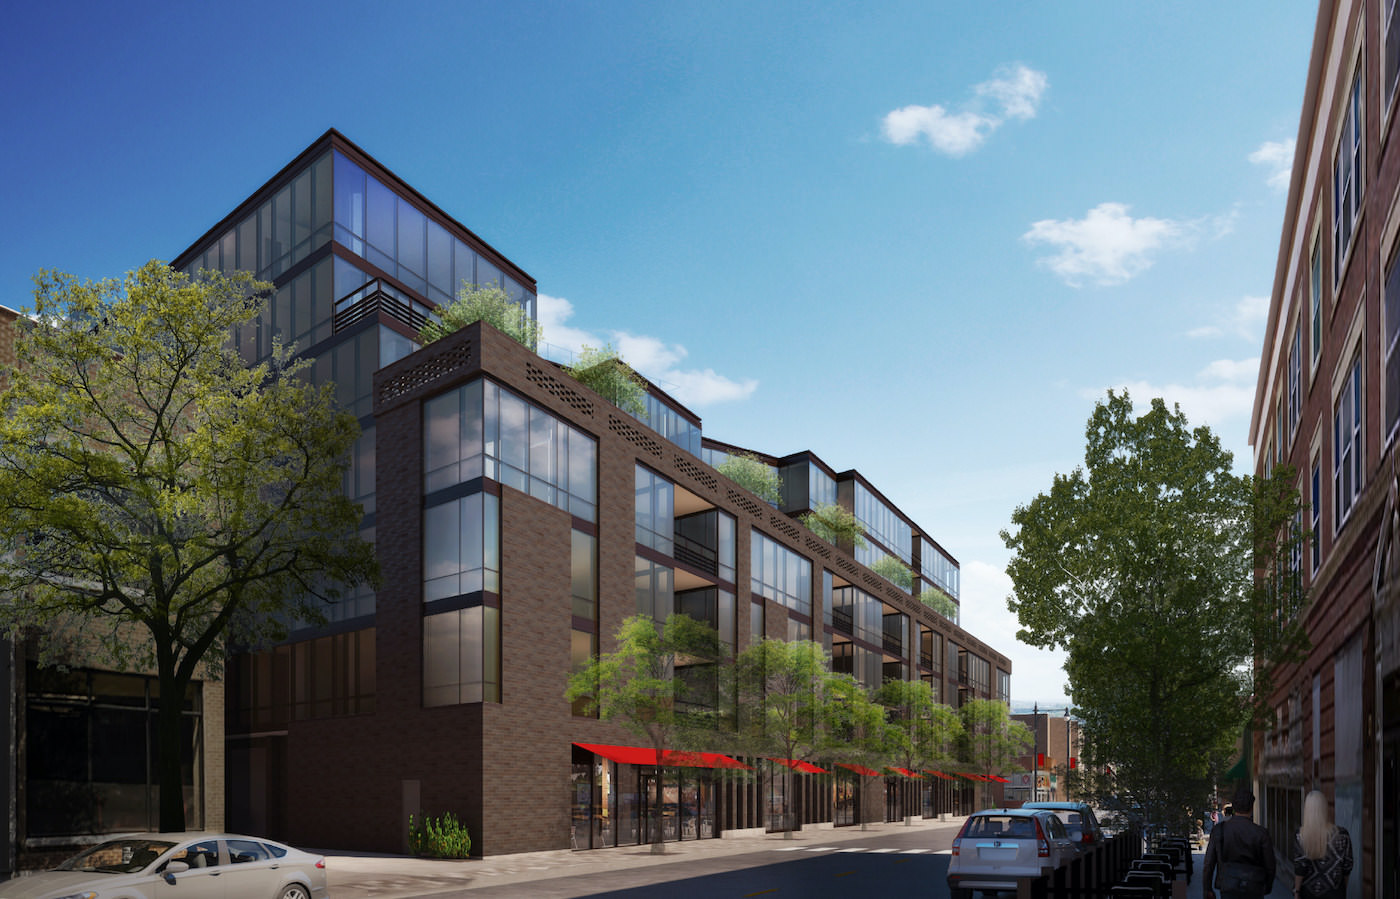 Optima Lakeview, featuring 14,000 square feet of commercial retail space